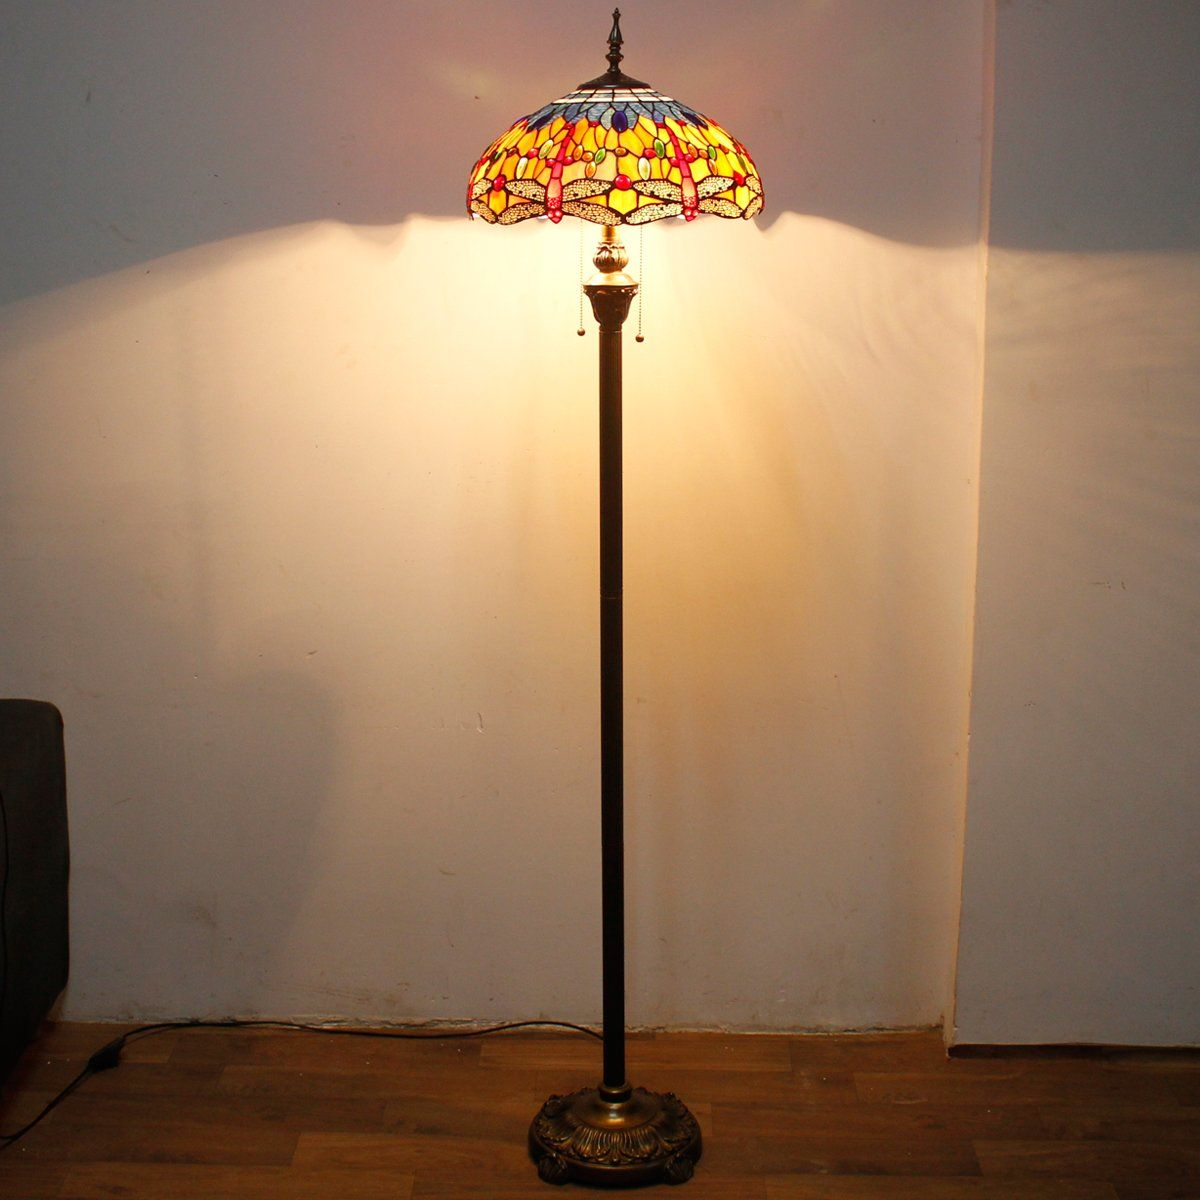 WERFACTORY Tiffany Lamp Floor Reading light 64 inch tall